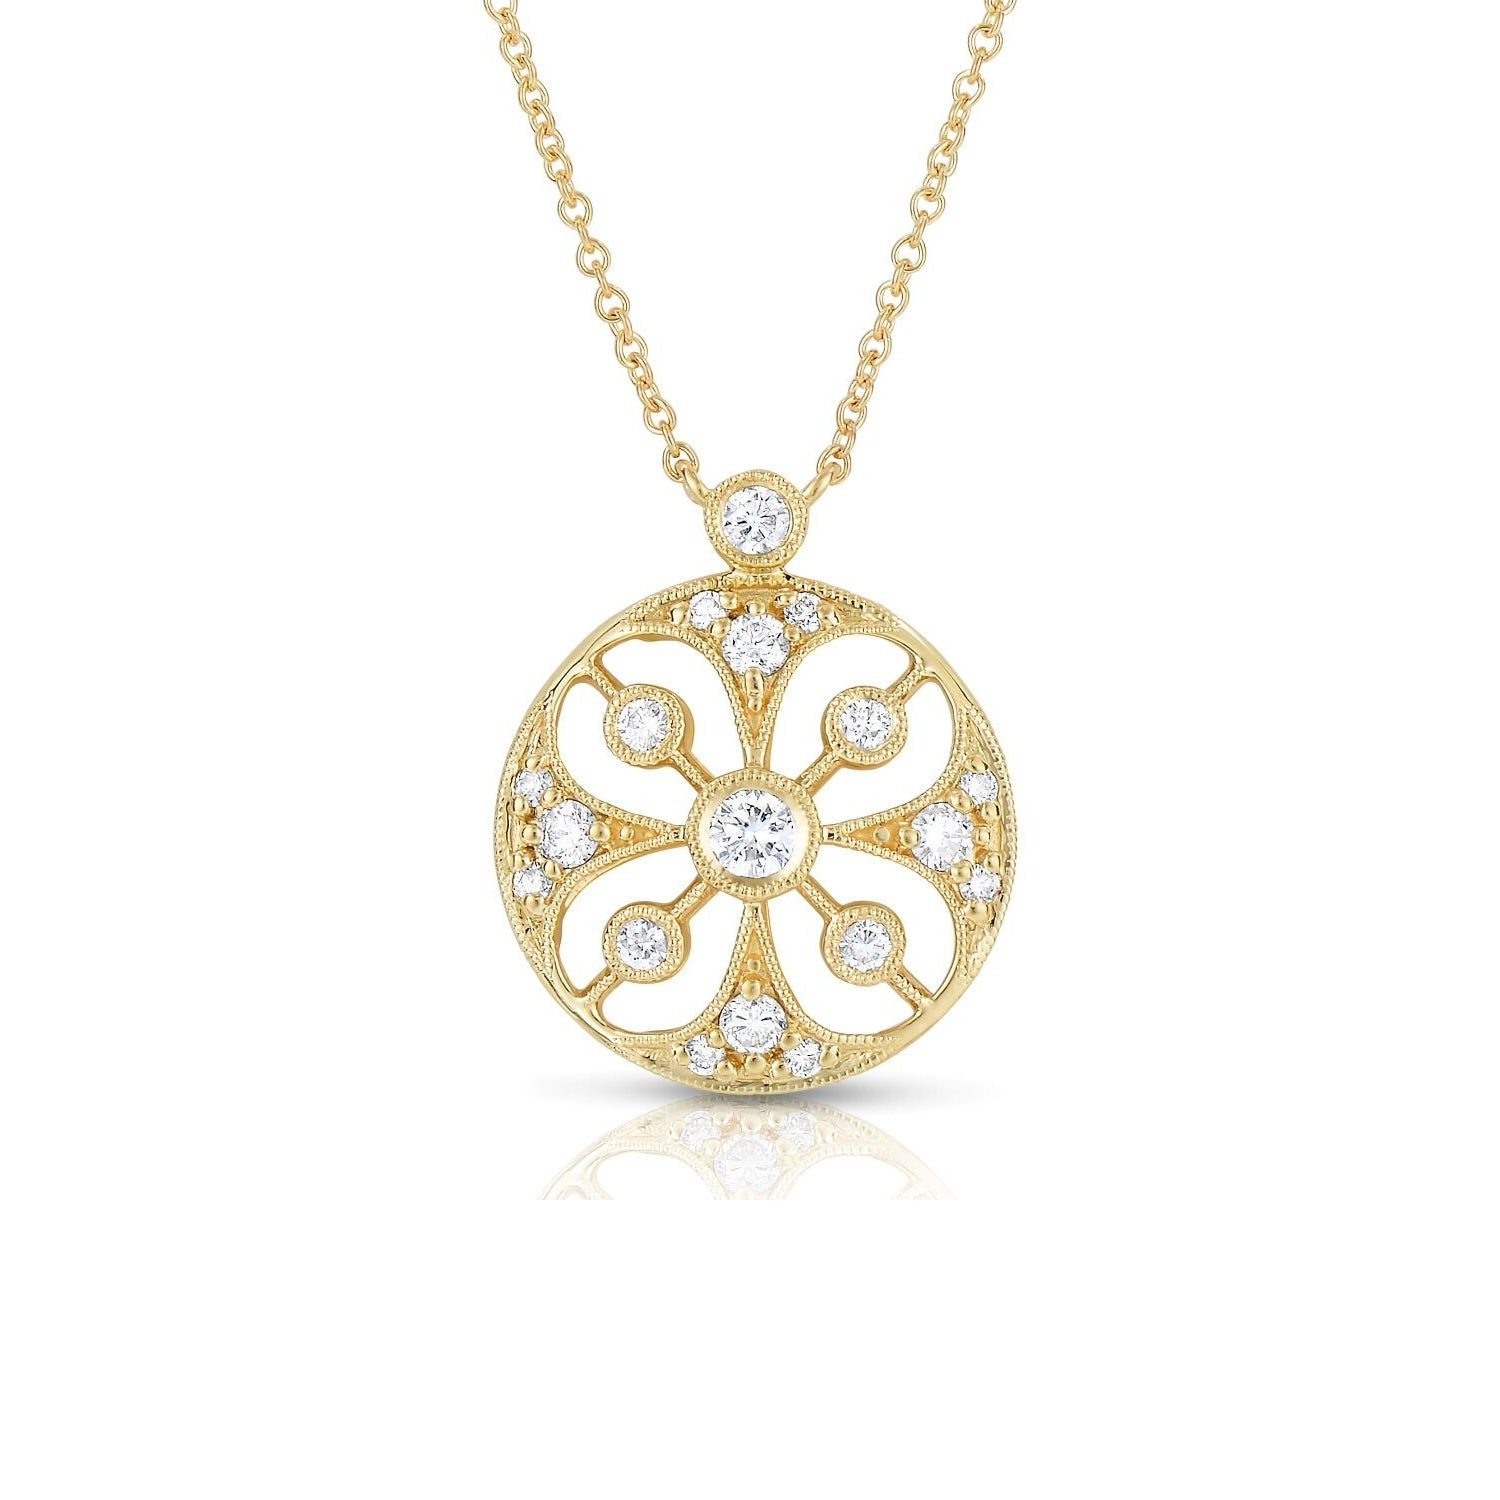 Neo Gothic Design Diamond Necklace, 14K Yellow Gold